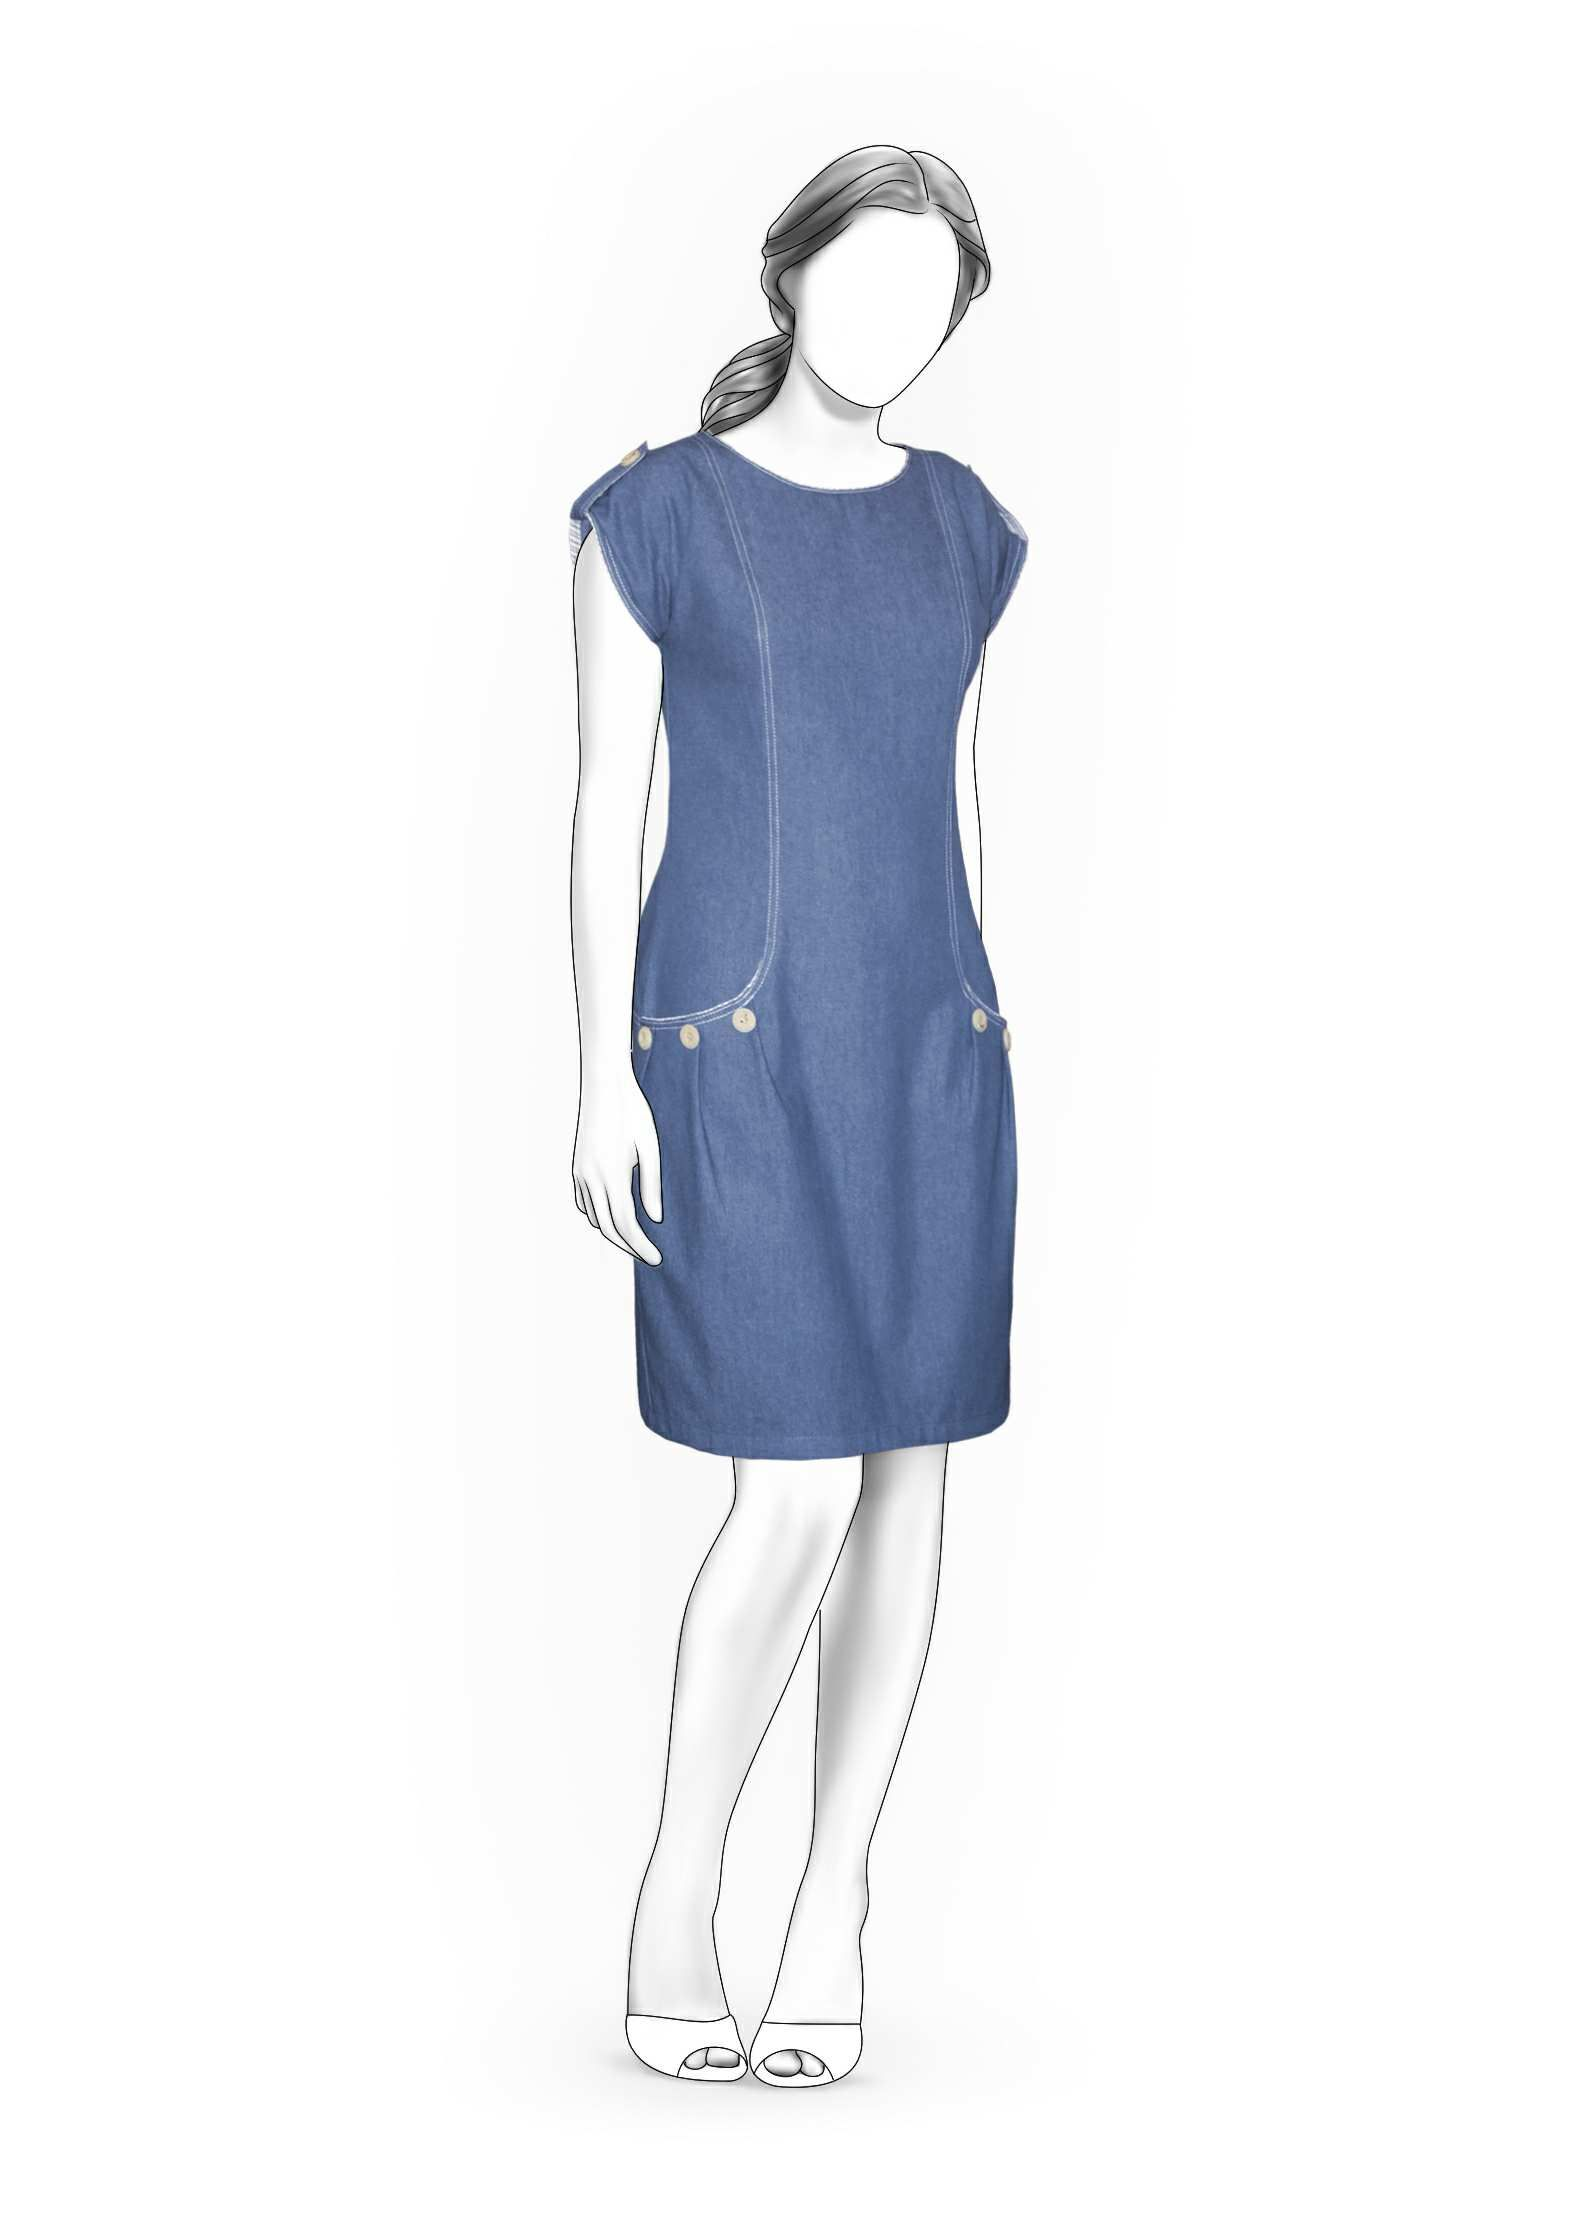 Kleid - Schnittmuster #4026 Made-to-measure sewing pattern from ...